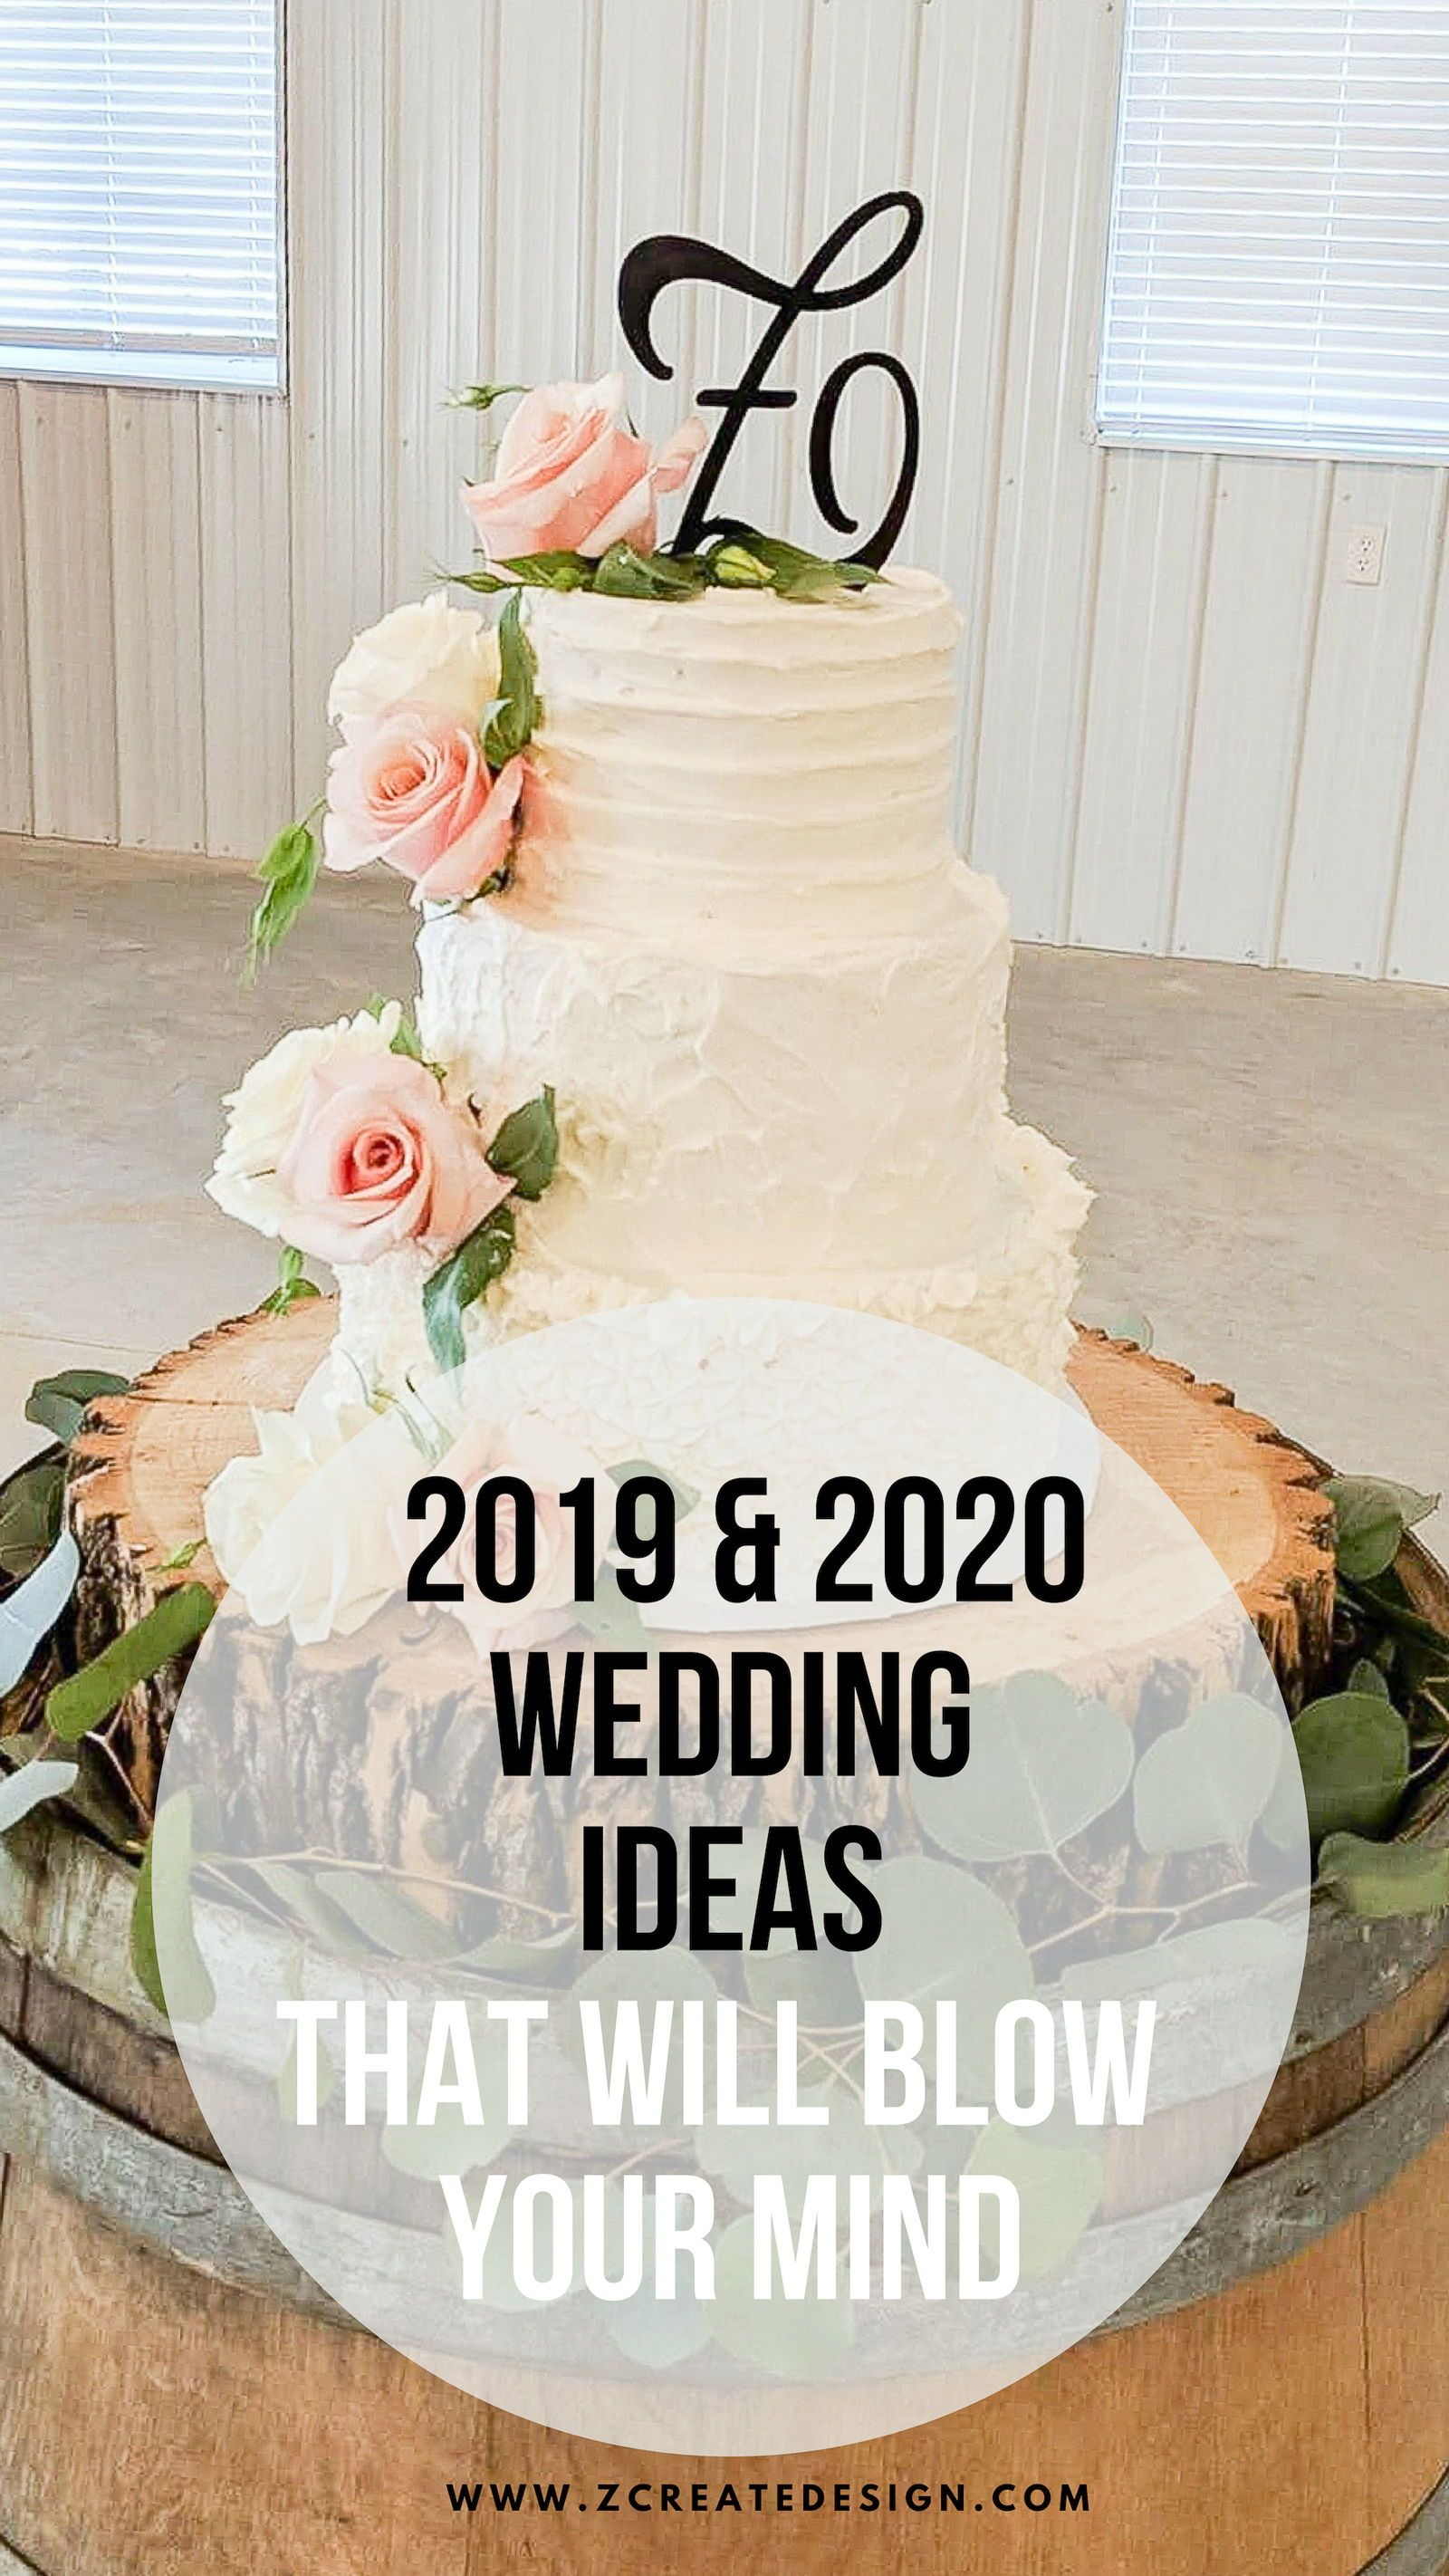 2020 Fall Decorating Ideas Upcoming wedding trends and wedding decor ideas for 2019 and 2020